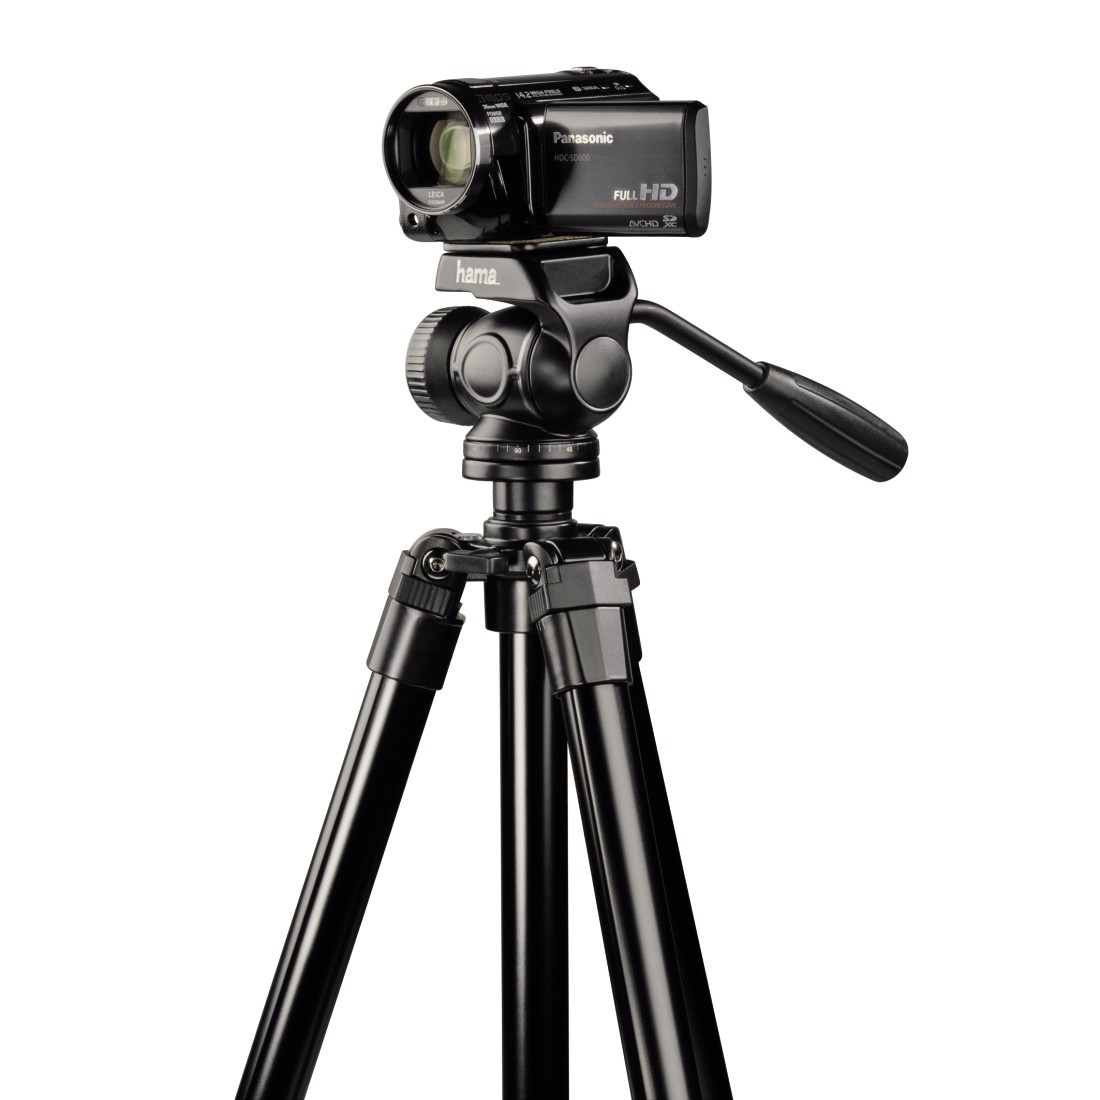 awx4 High-Res Appliance 4 - Hama, Delta Pro 180 Tripod, 2D